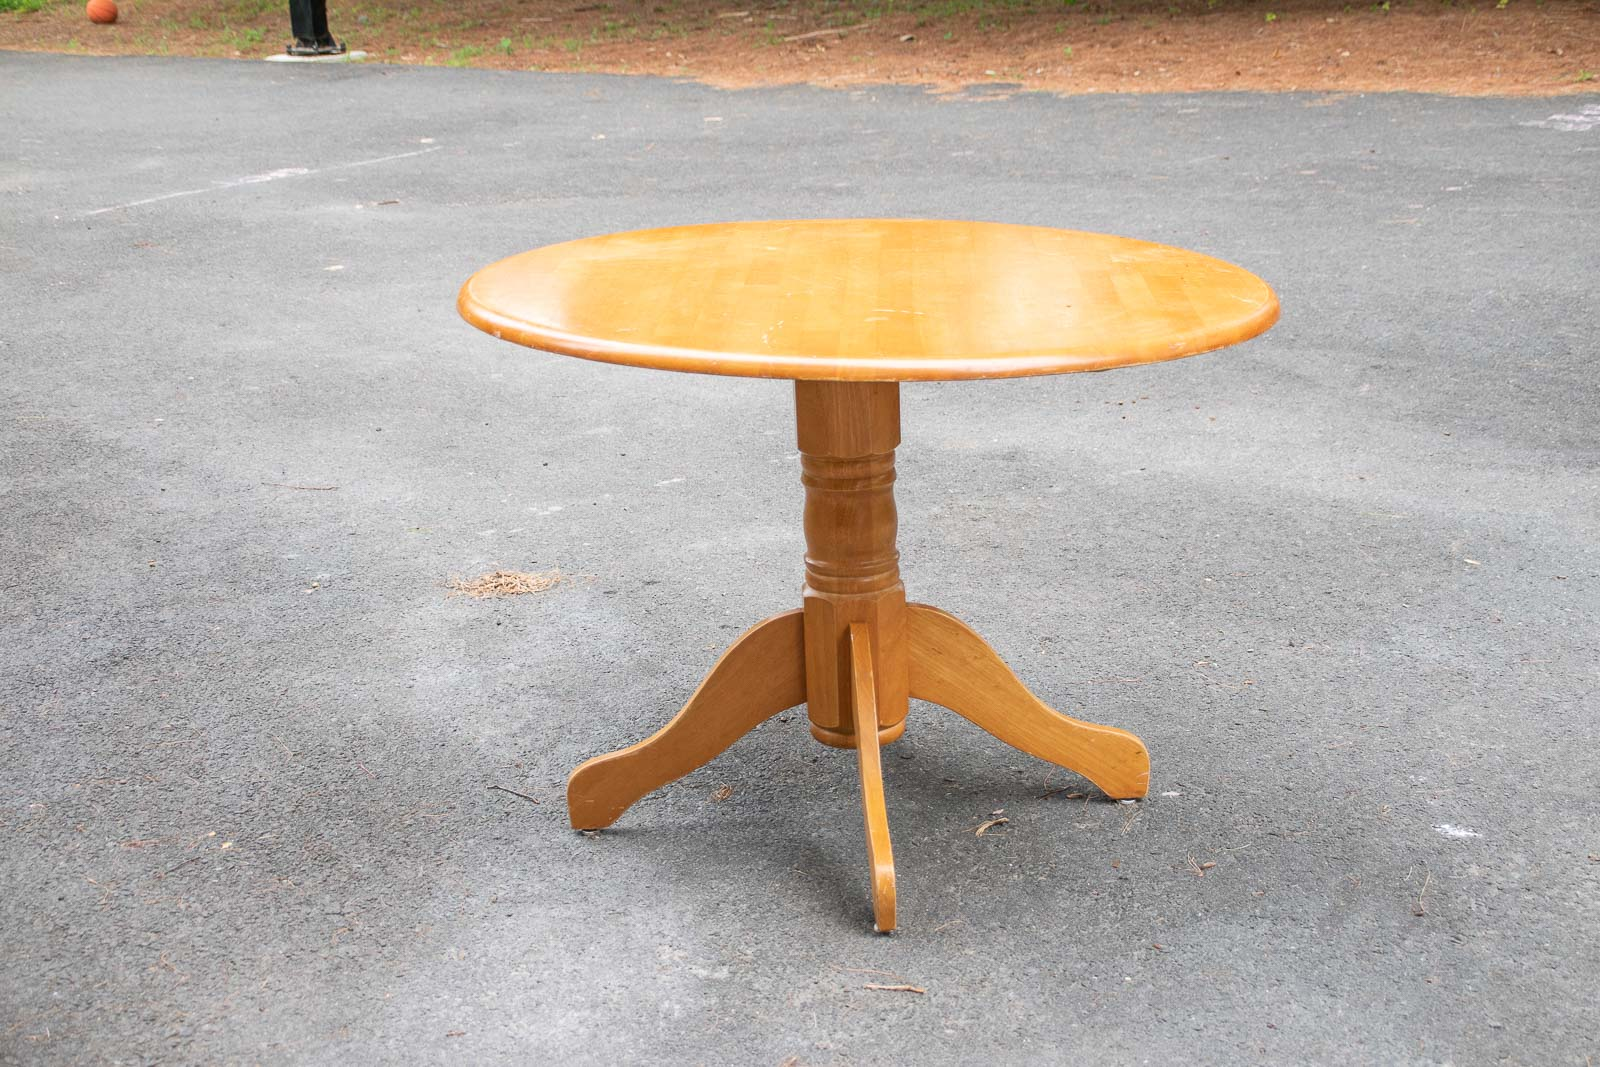 thrifted pedestal table